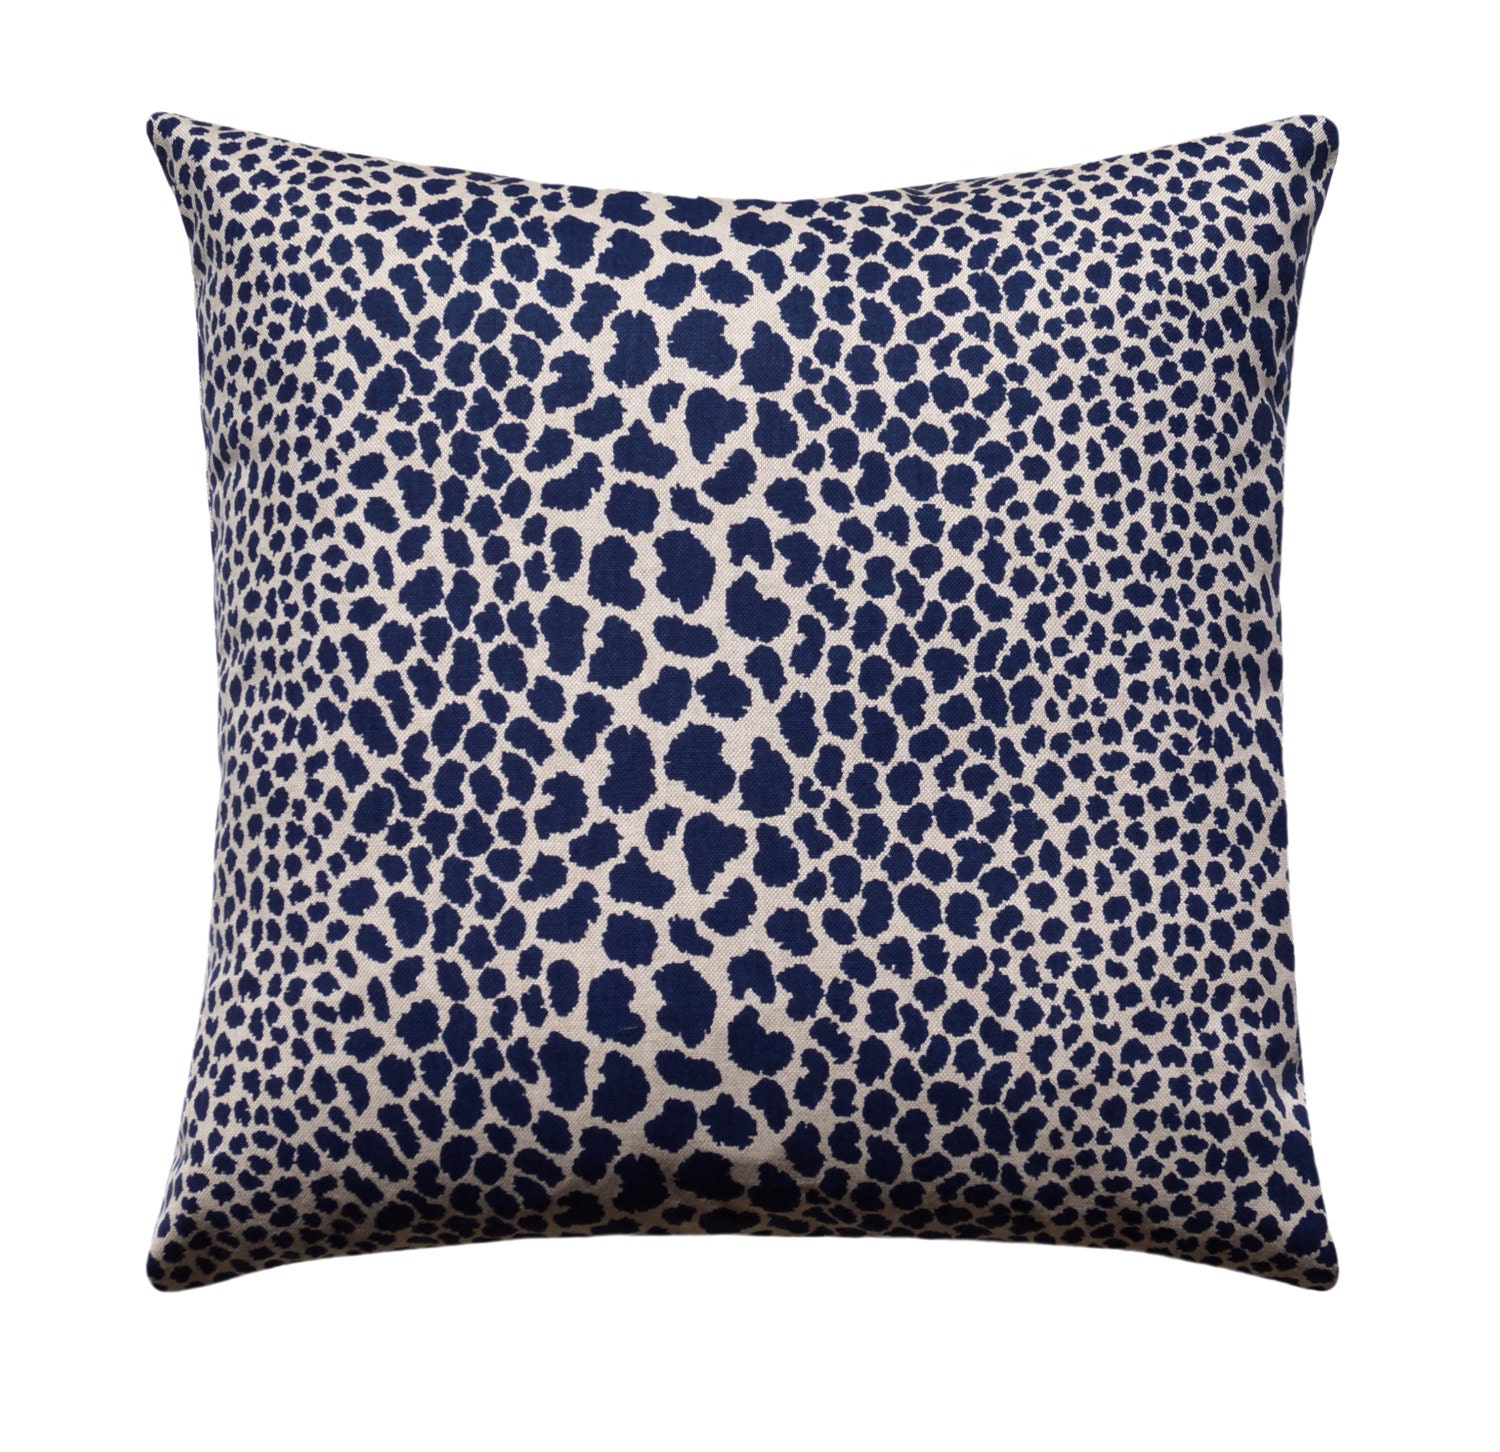 Leopard Pillow Cover Cheetah Pillow Cover Leopard Print